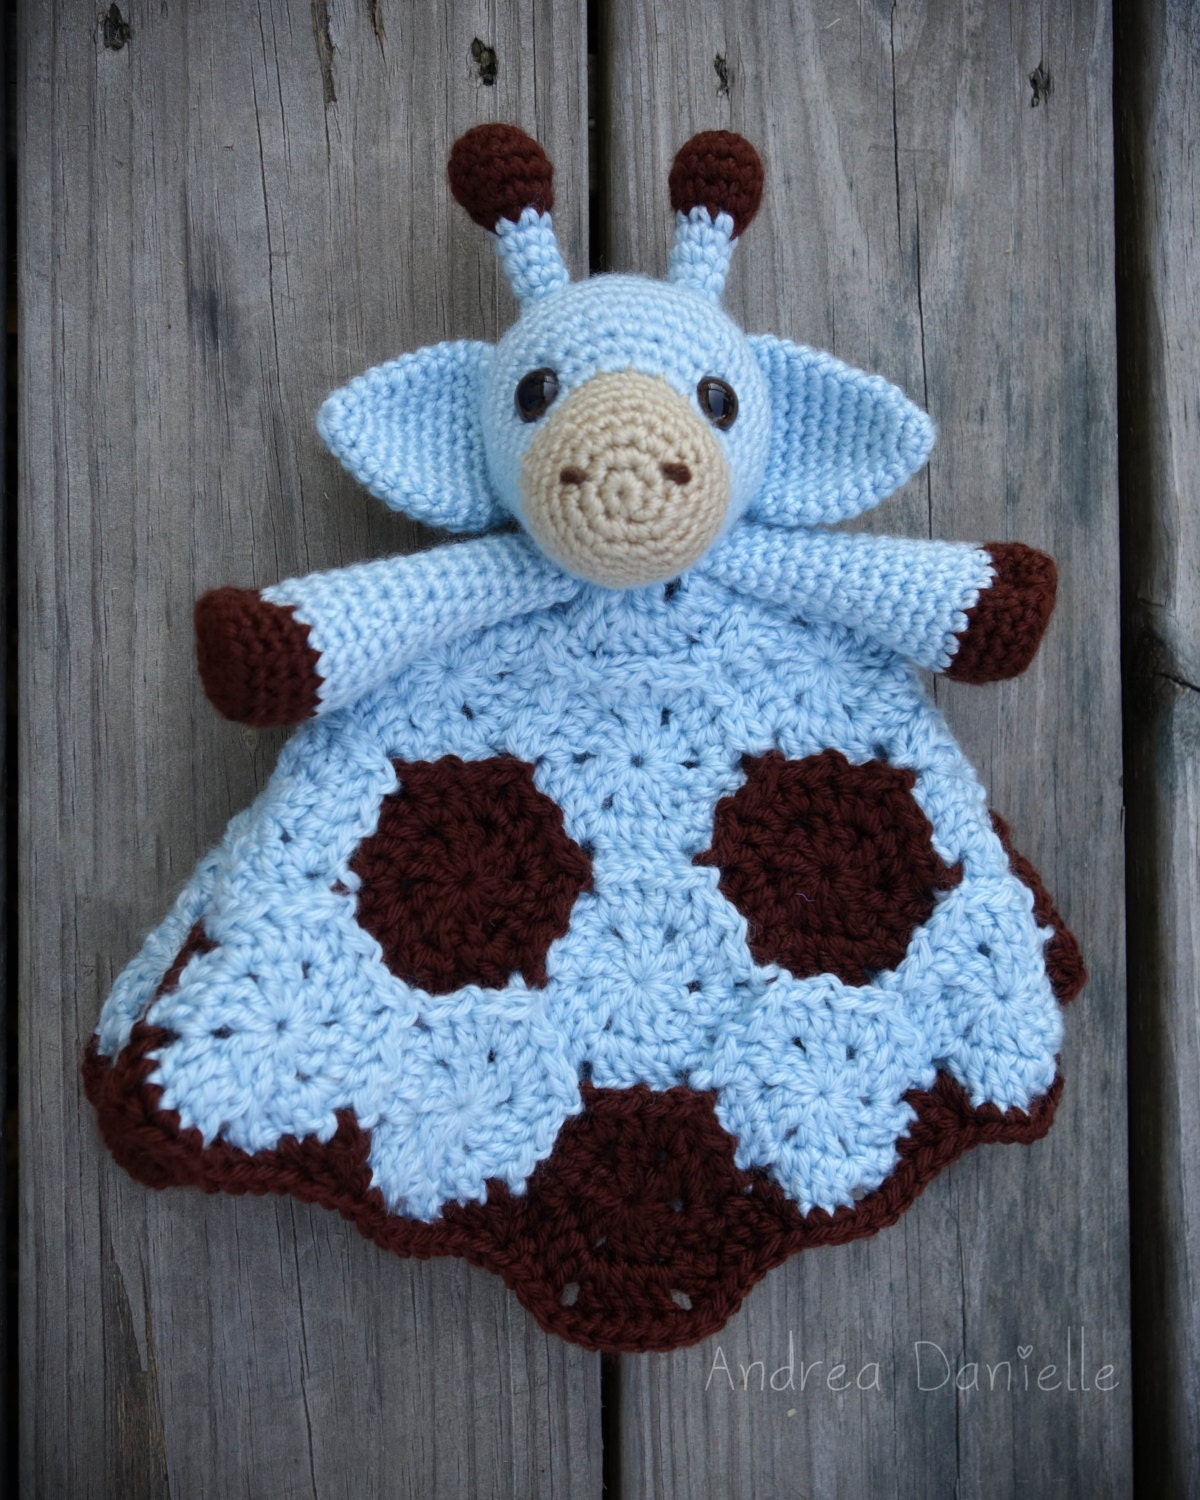 Crochet Pattern Giraffe Blanket : Geri the Giraffe Crochet Lovey/ Security Blanket: Blue Brown